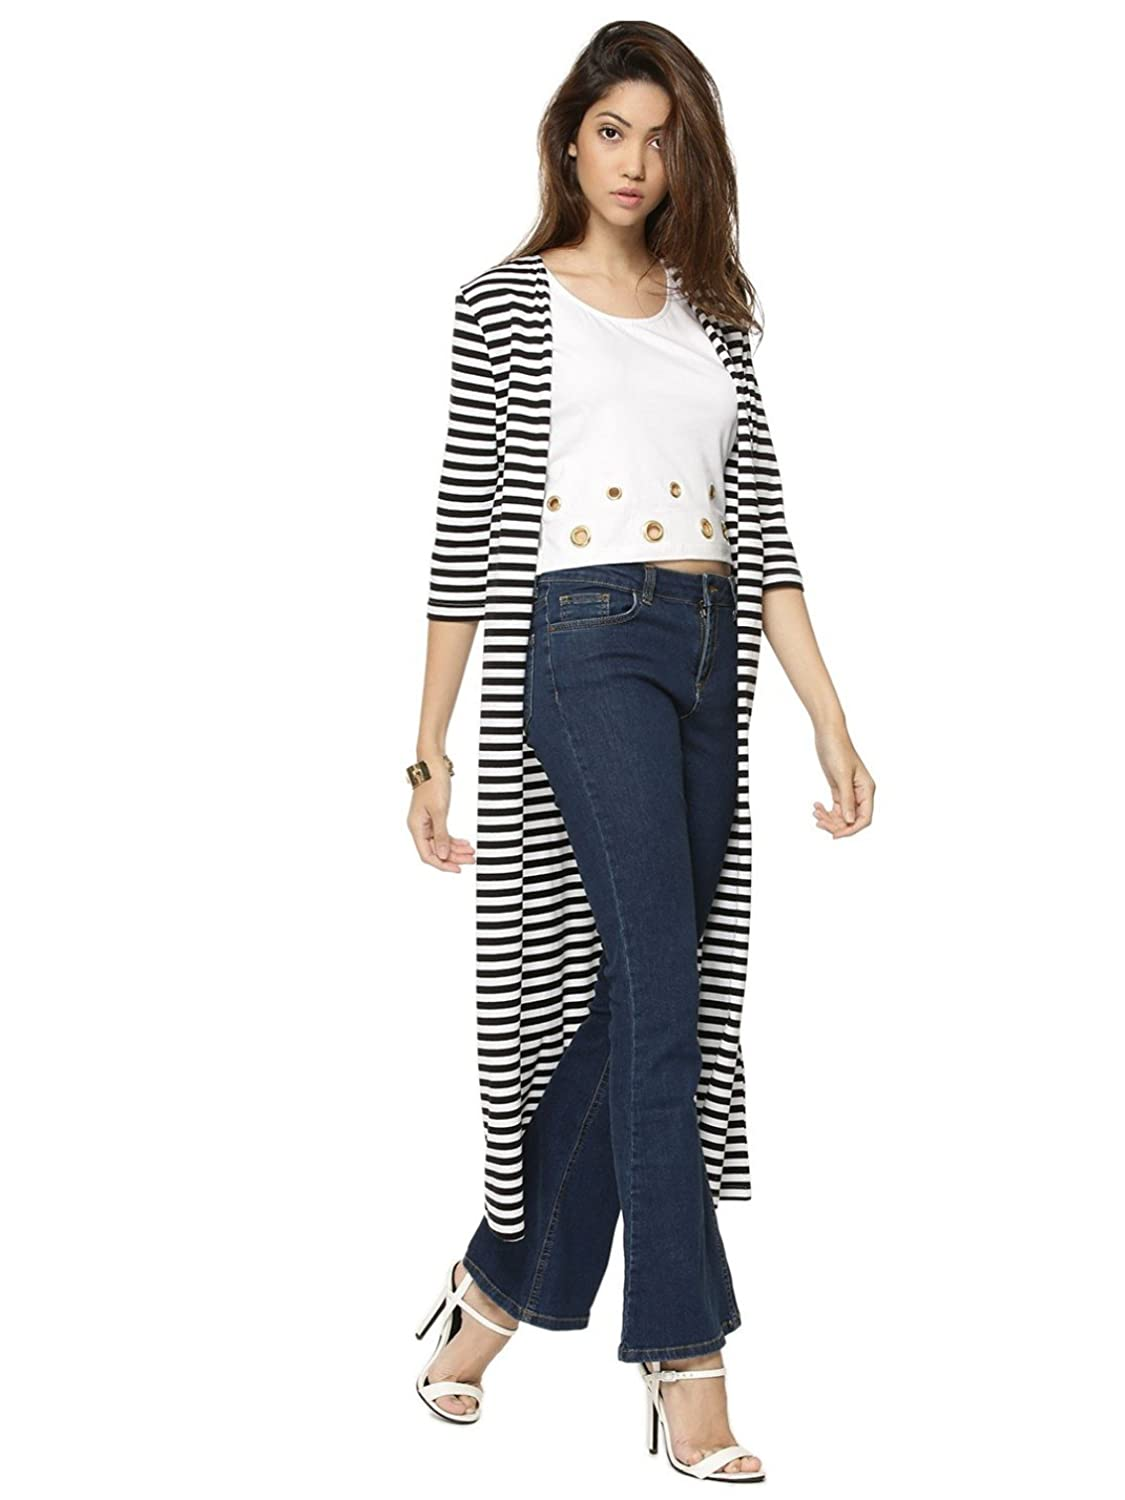 Raabta Strip Long Cardigan: Amazon.in: Clothing & Accessories